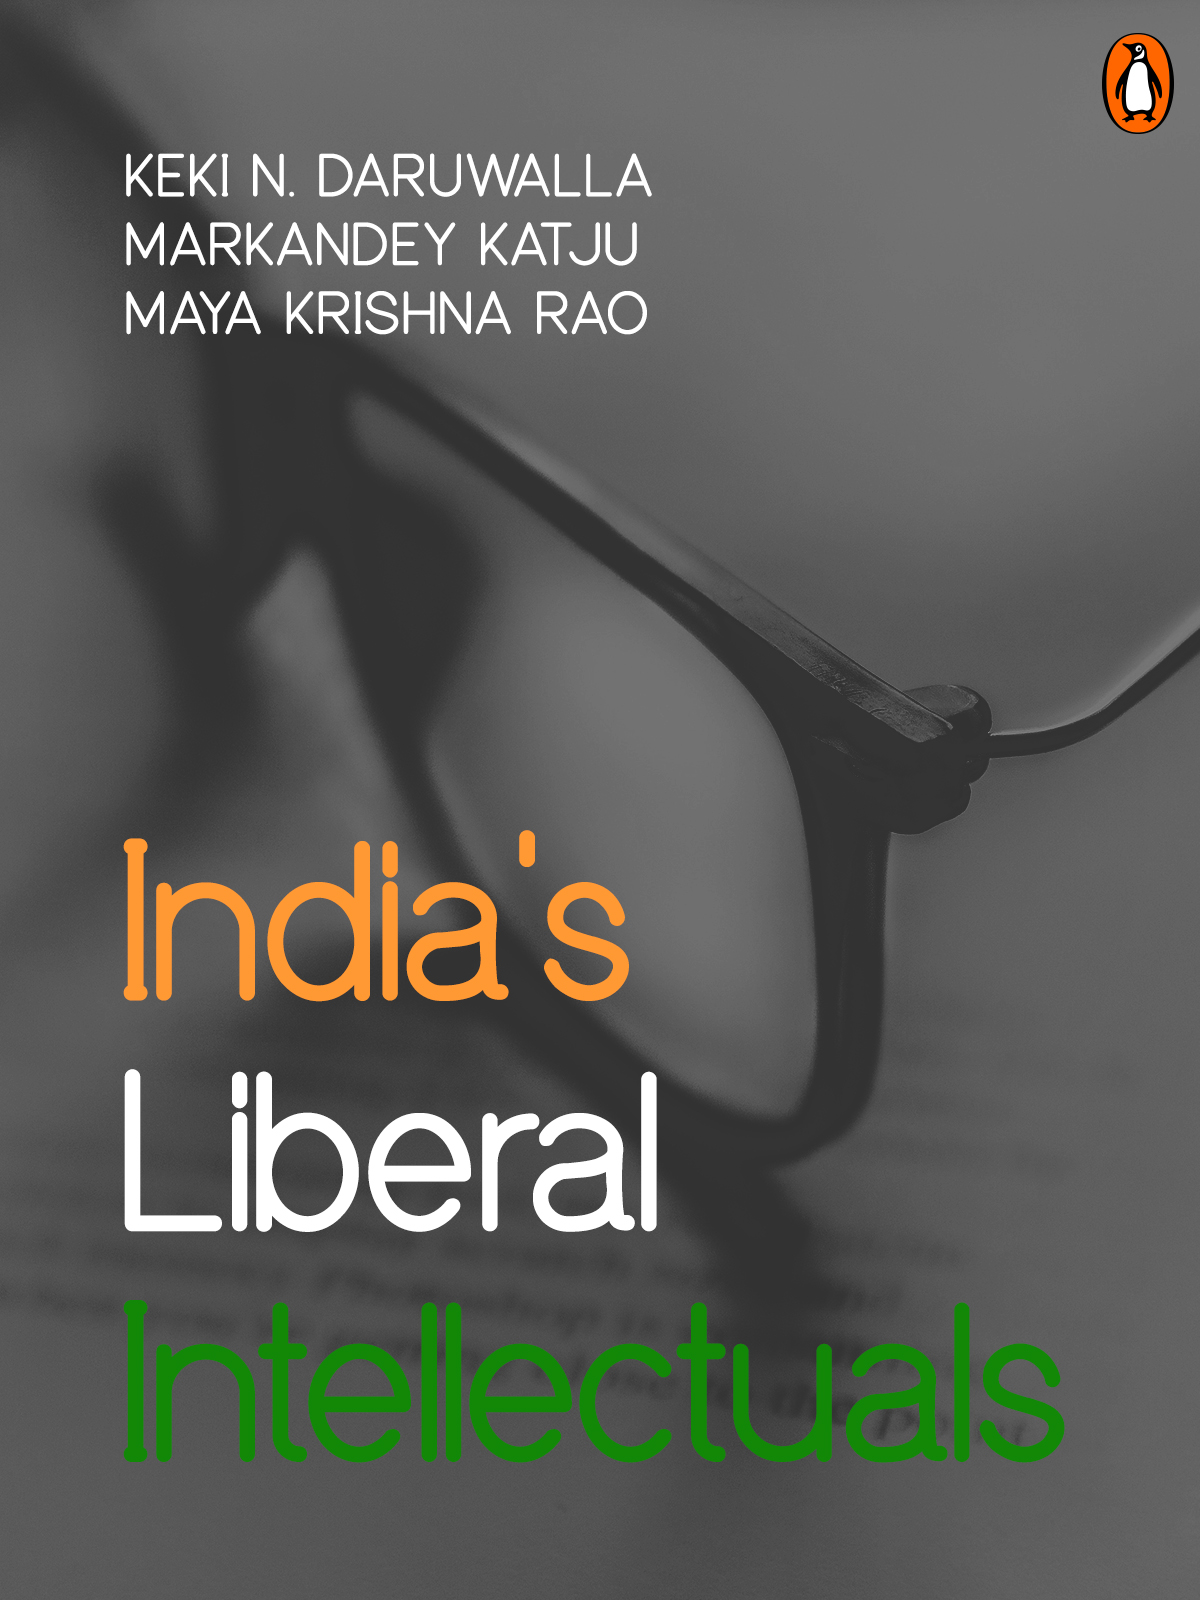 India's Liberal Intellectuals